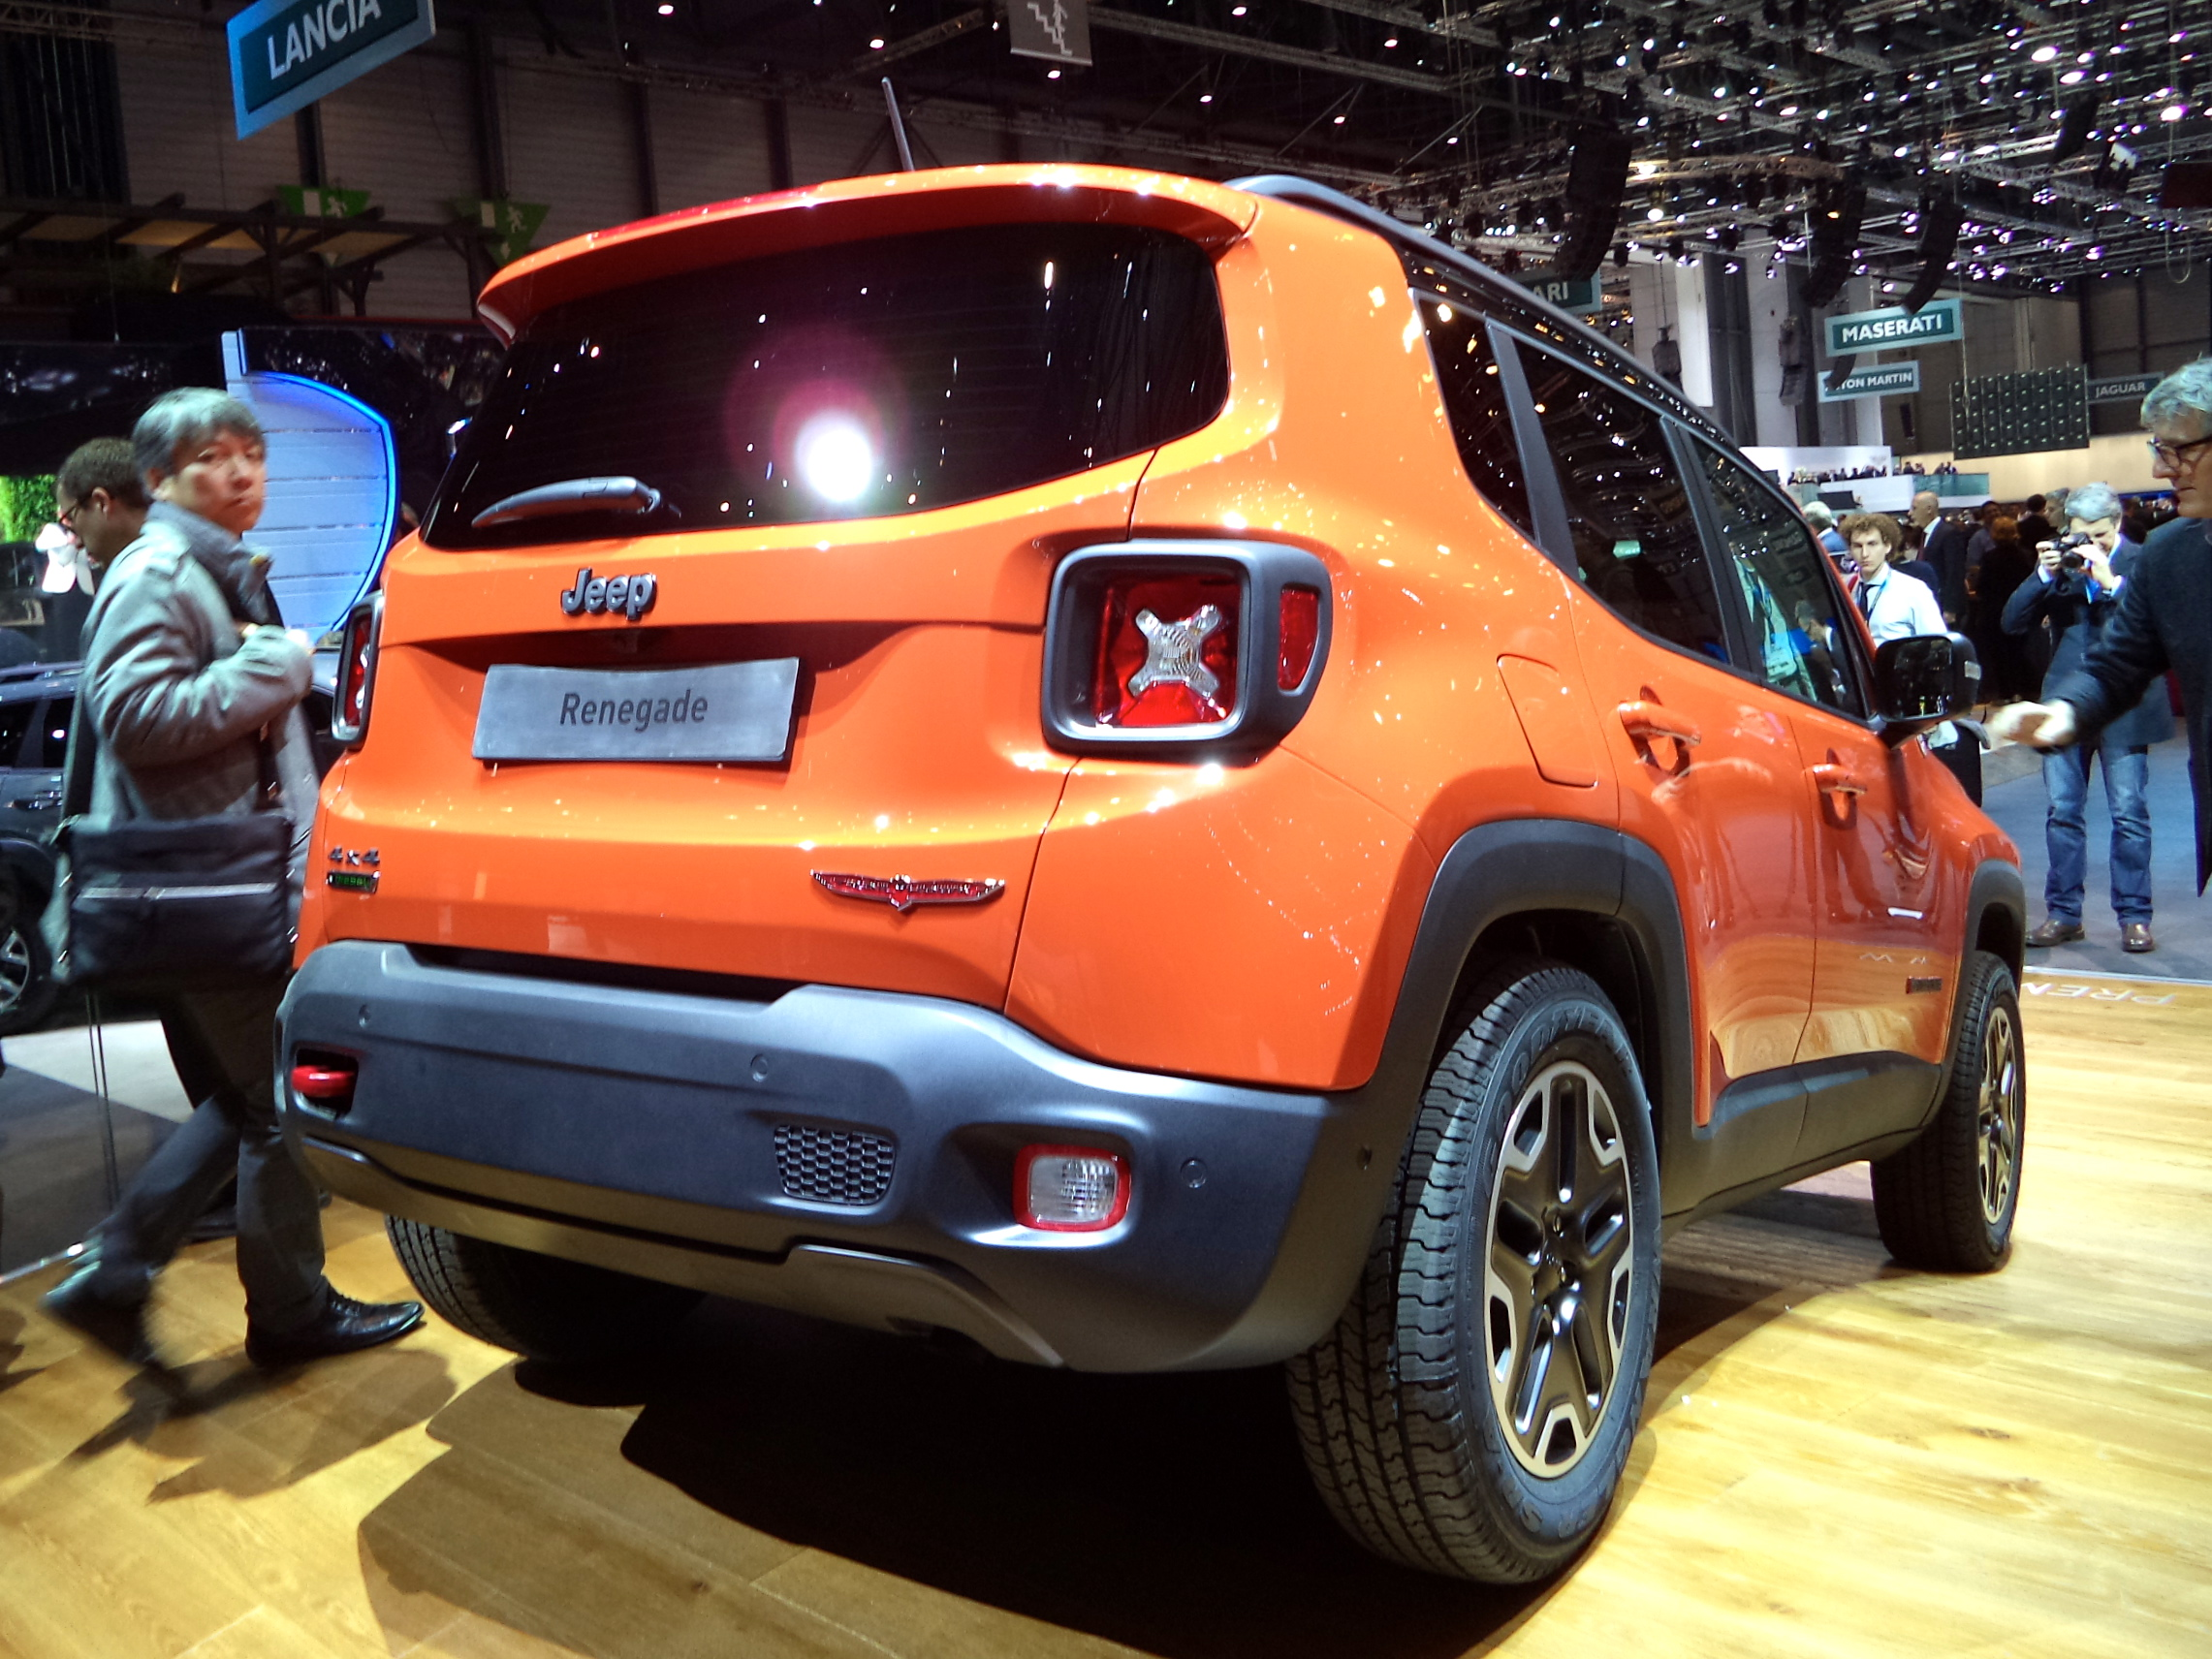 real daystar lift renegade add kit forum is aftermarket jeep ons